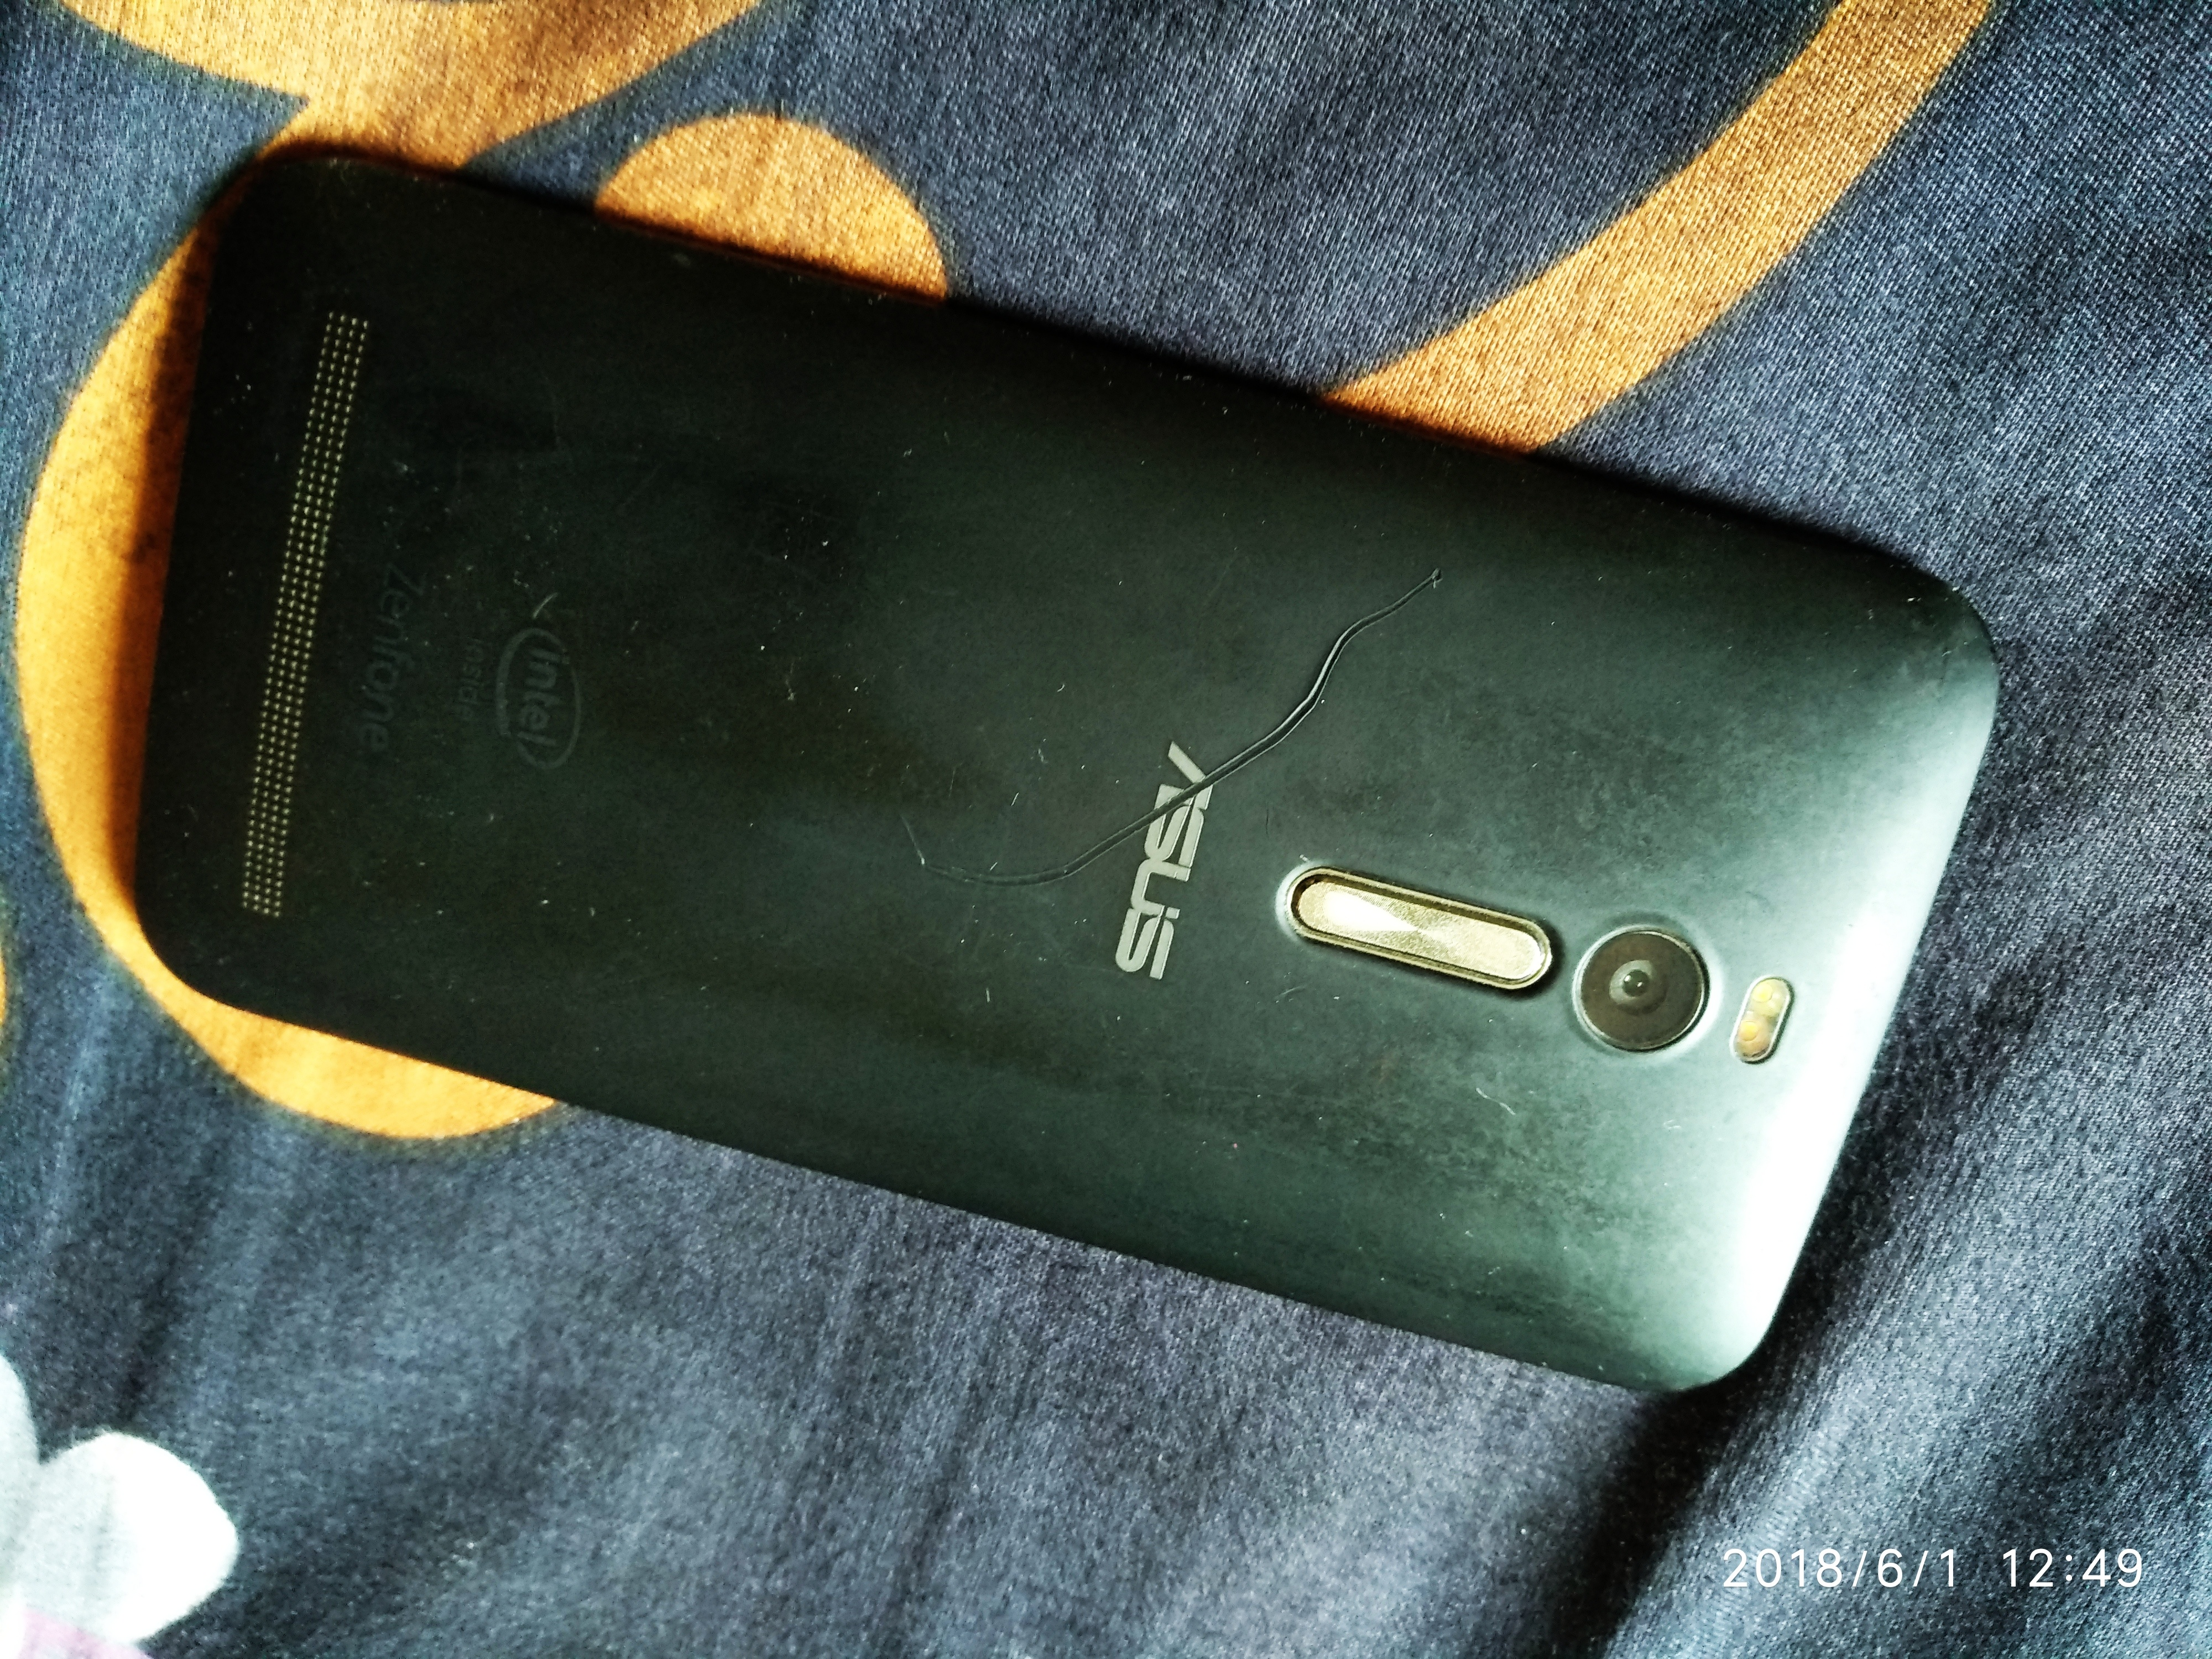 Are Asus Mobile Phones Durable Quora Smartphone Zenfone 2 Ze550ml Im Using An Since 2015 And Its Working Really Well I Had Dropped It 3 Timesaccidentally Till Date From A Maximum Height Of 1m